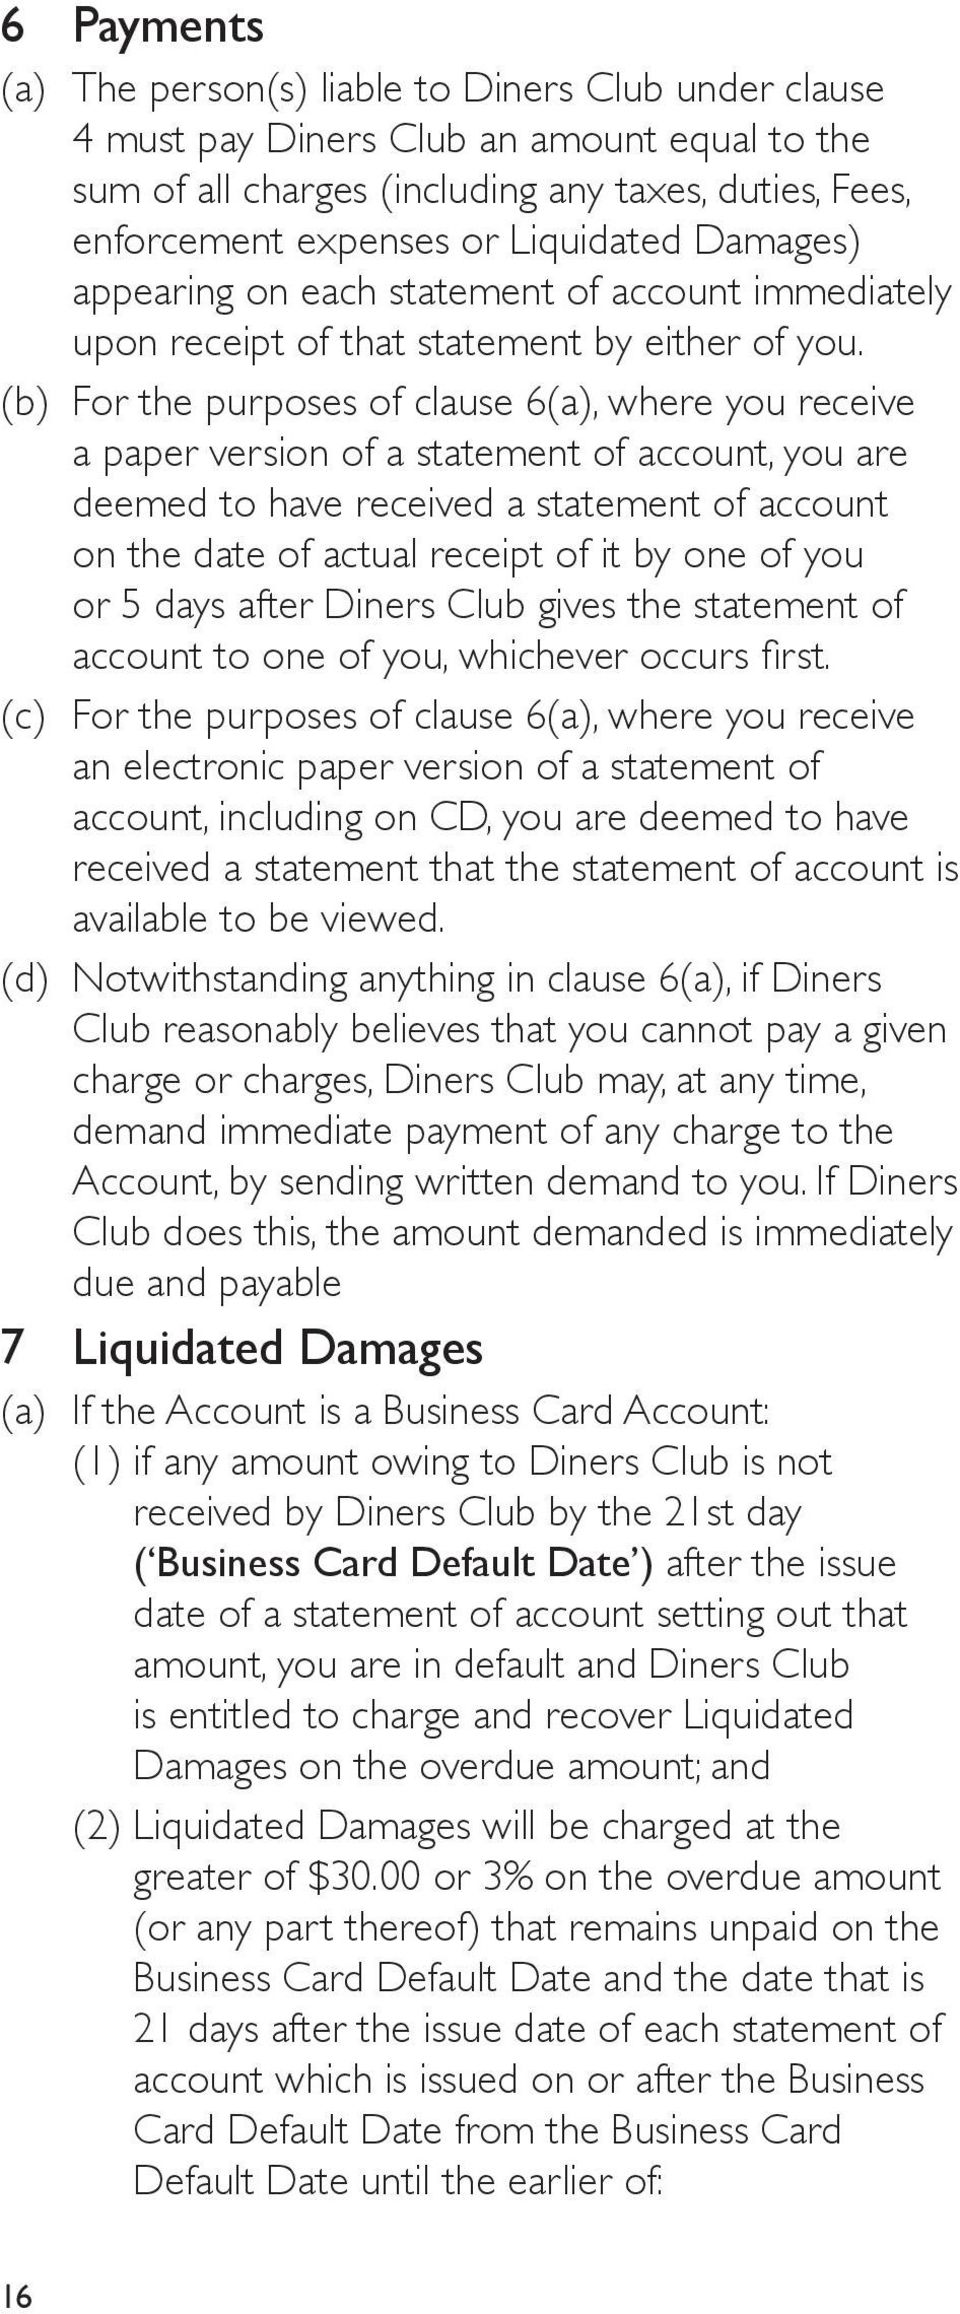 (b) For the purposes of clause 6(a), where you receive a paper version of a statement of account, you are deemed to have received a statement of account on the date of actual receipt of it by one of